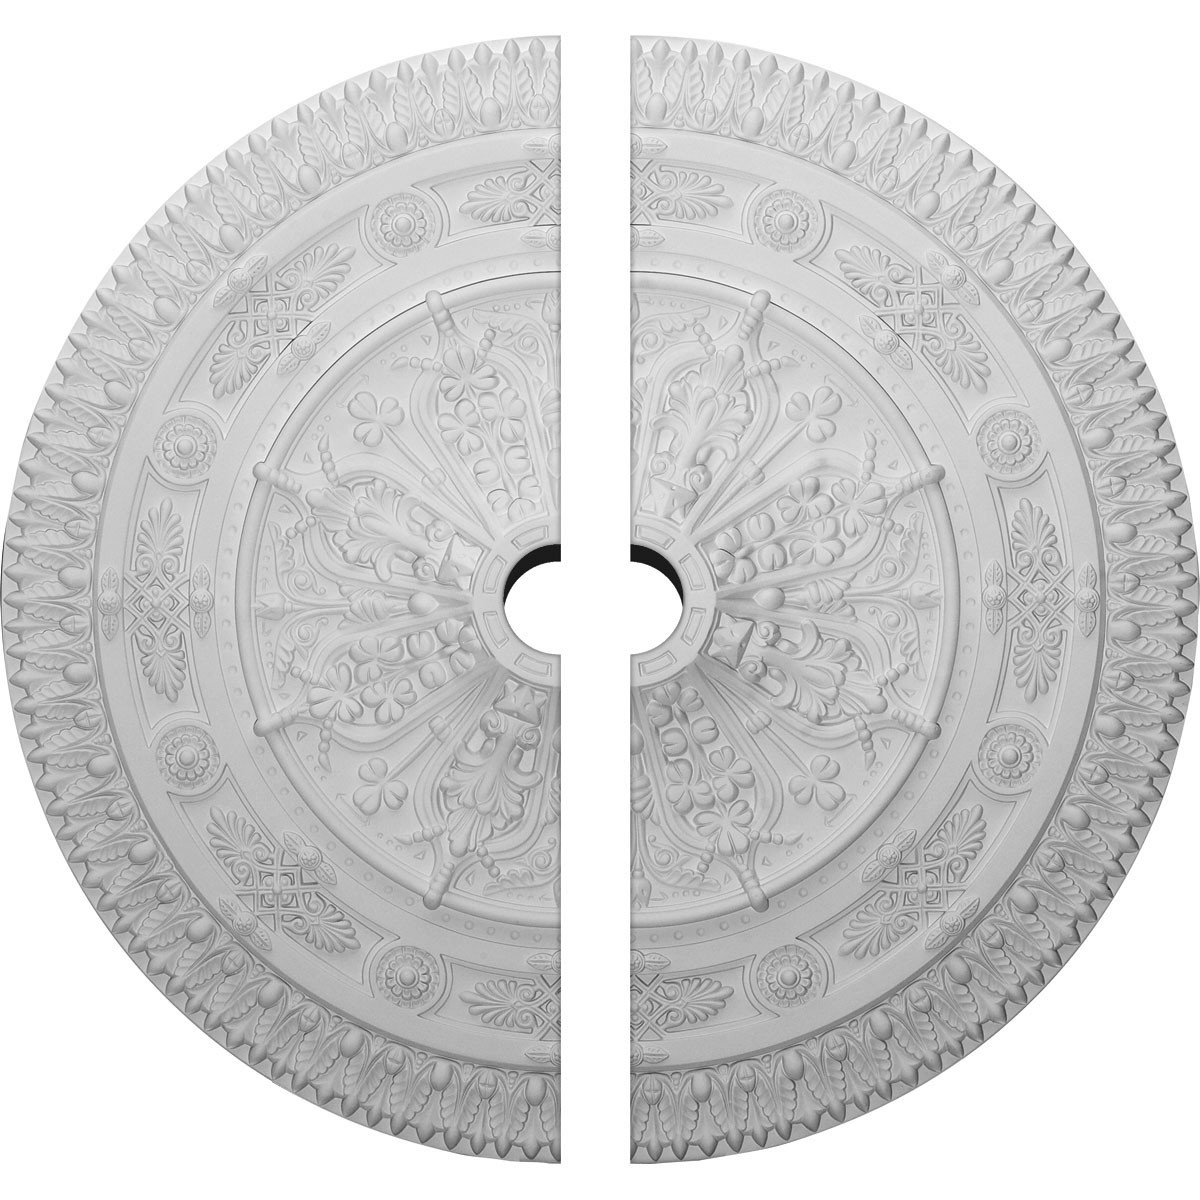 """EM-CM37NA2-05000 - 37 1/2""""OD x 5""""ID x 3 3/8""""P Naple Ceiling Medallion, Two Piece (Fits Canopies up to 3 1/2"""")"""